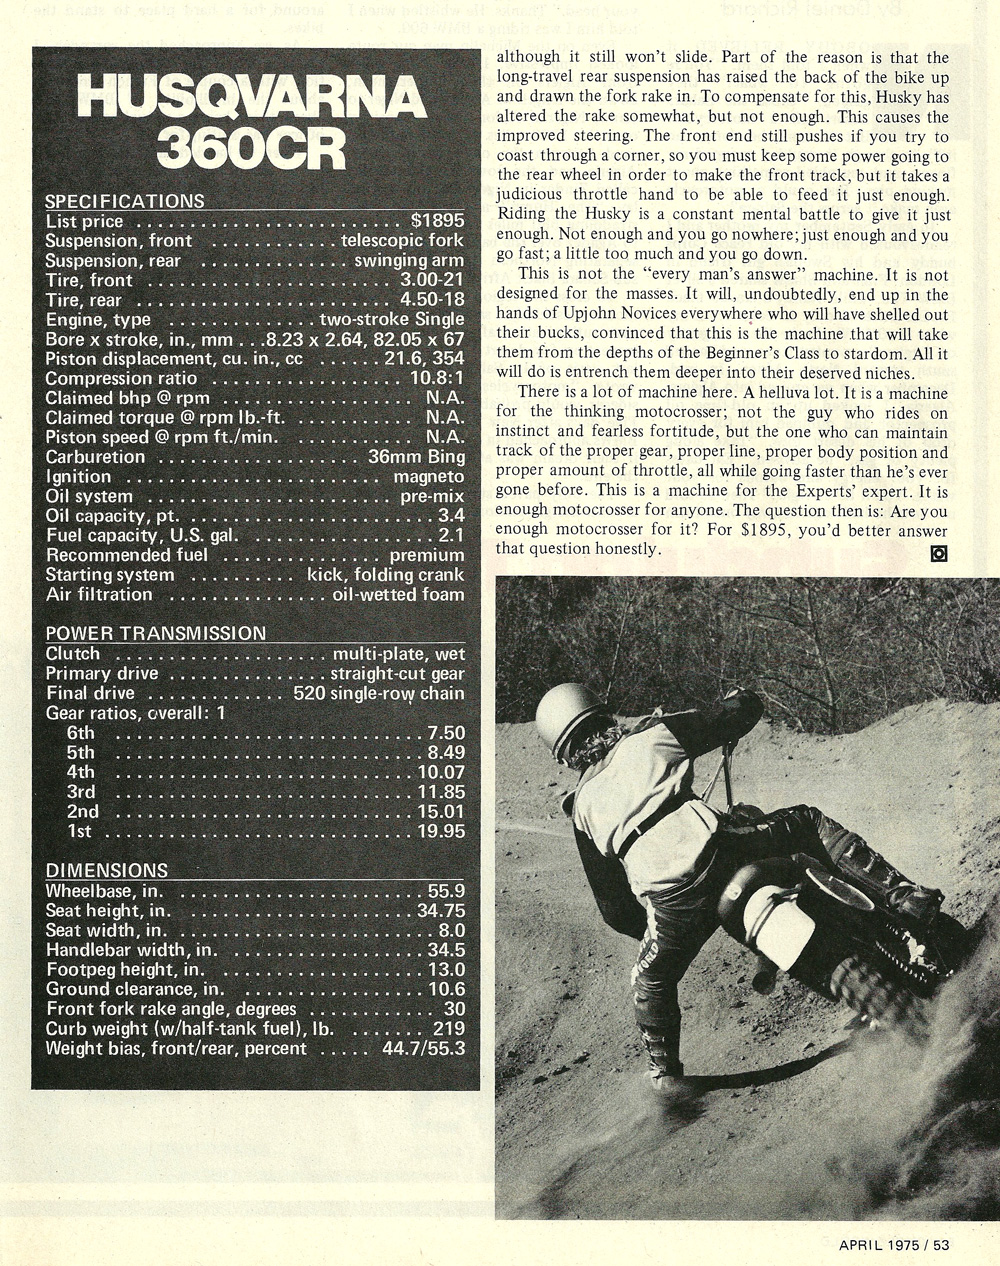 1975 Husqvarna 360CR road test 06.jpg